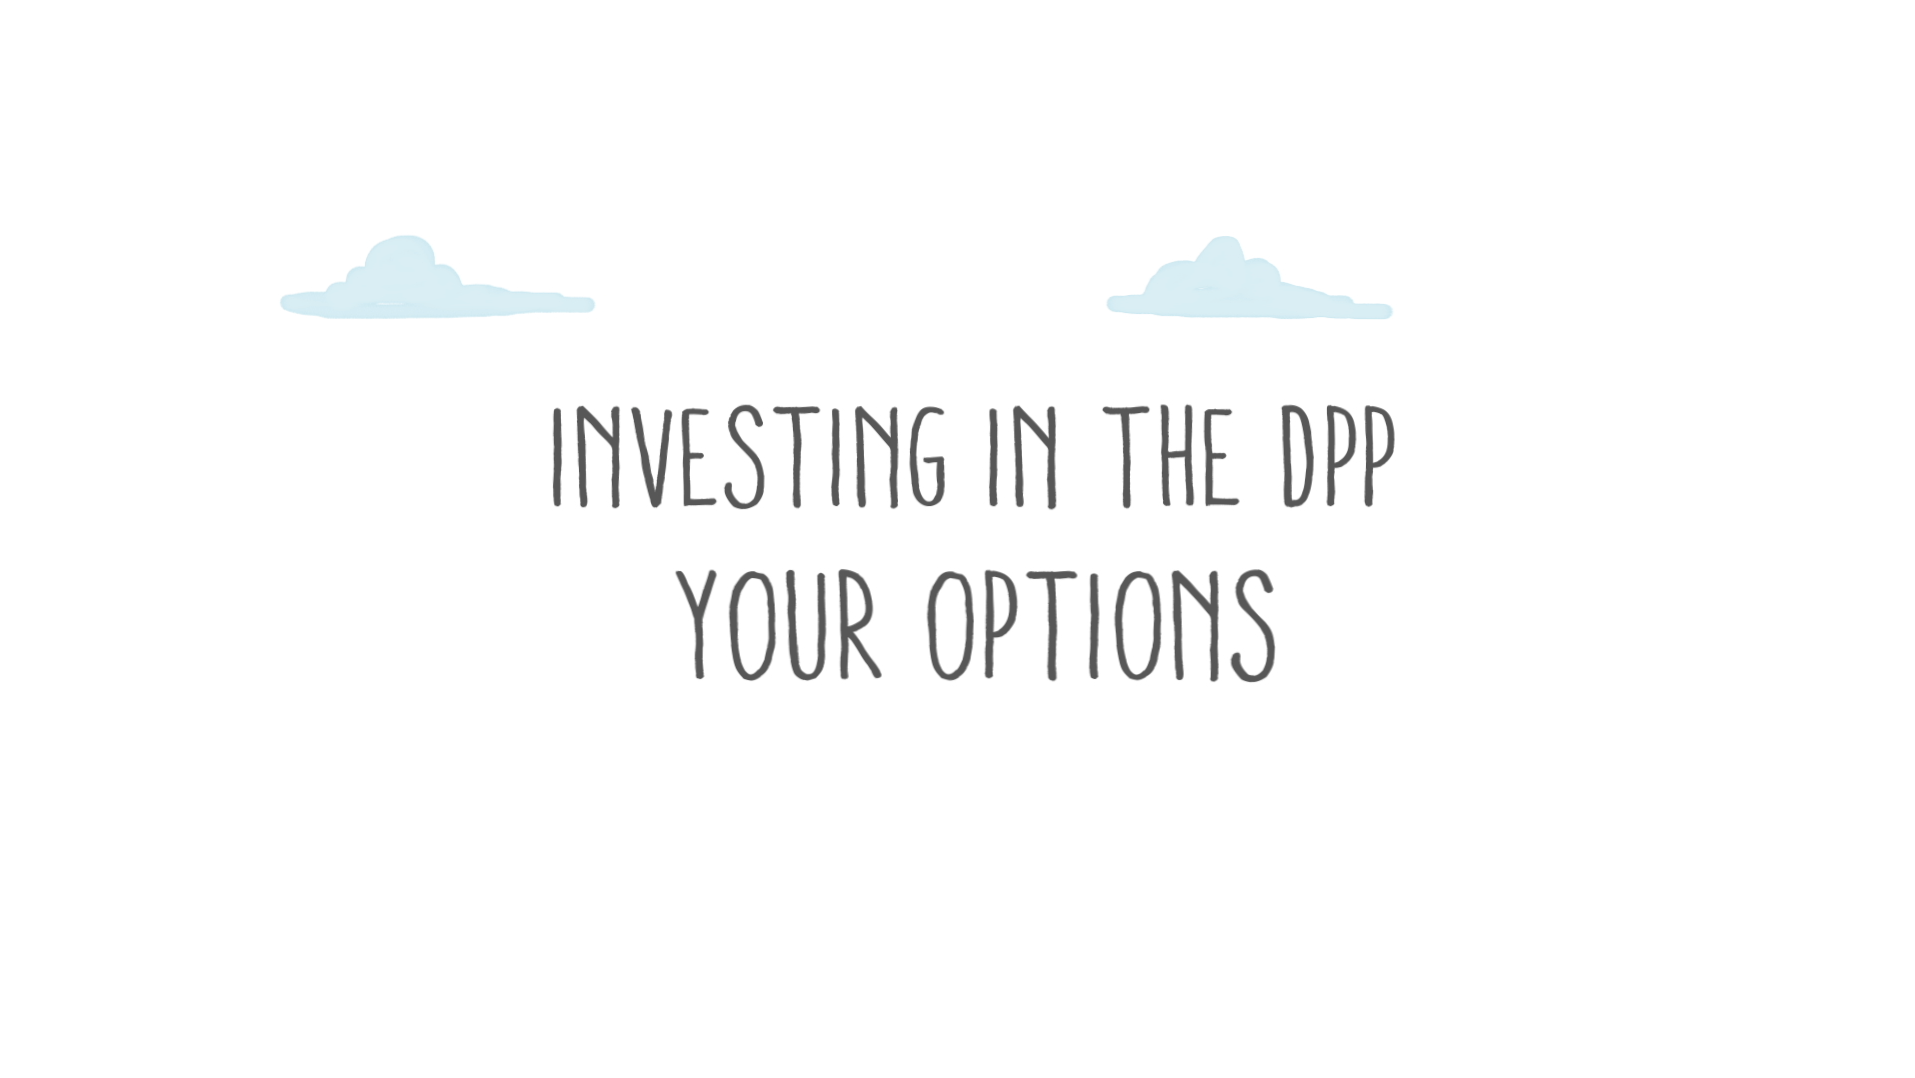 Investing in the DPP your options